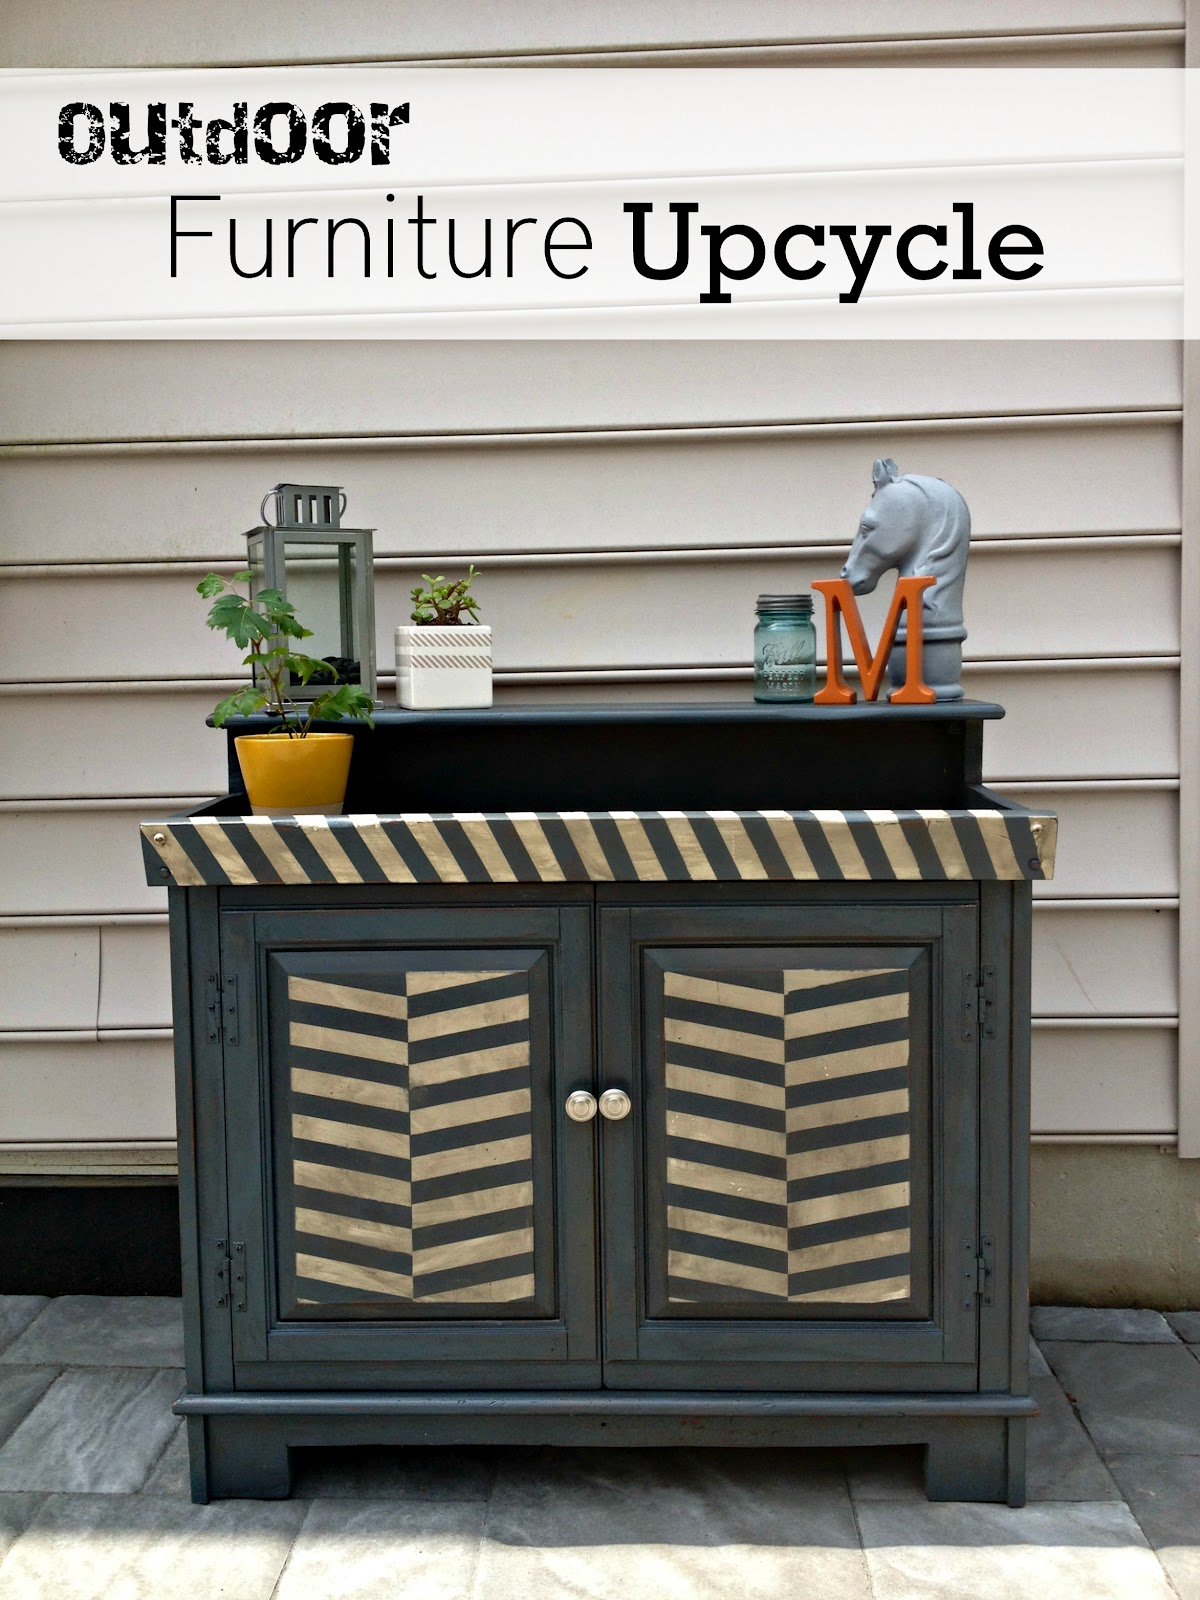 Outdoor Furniture Upcycle